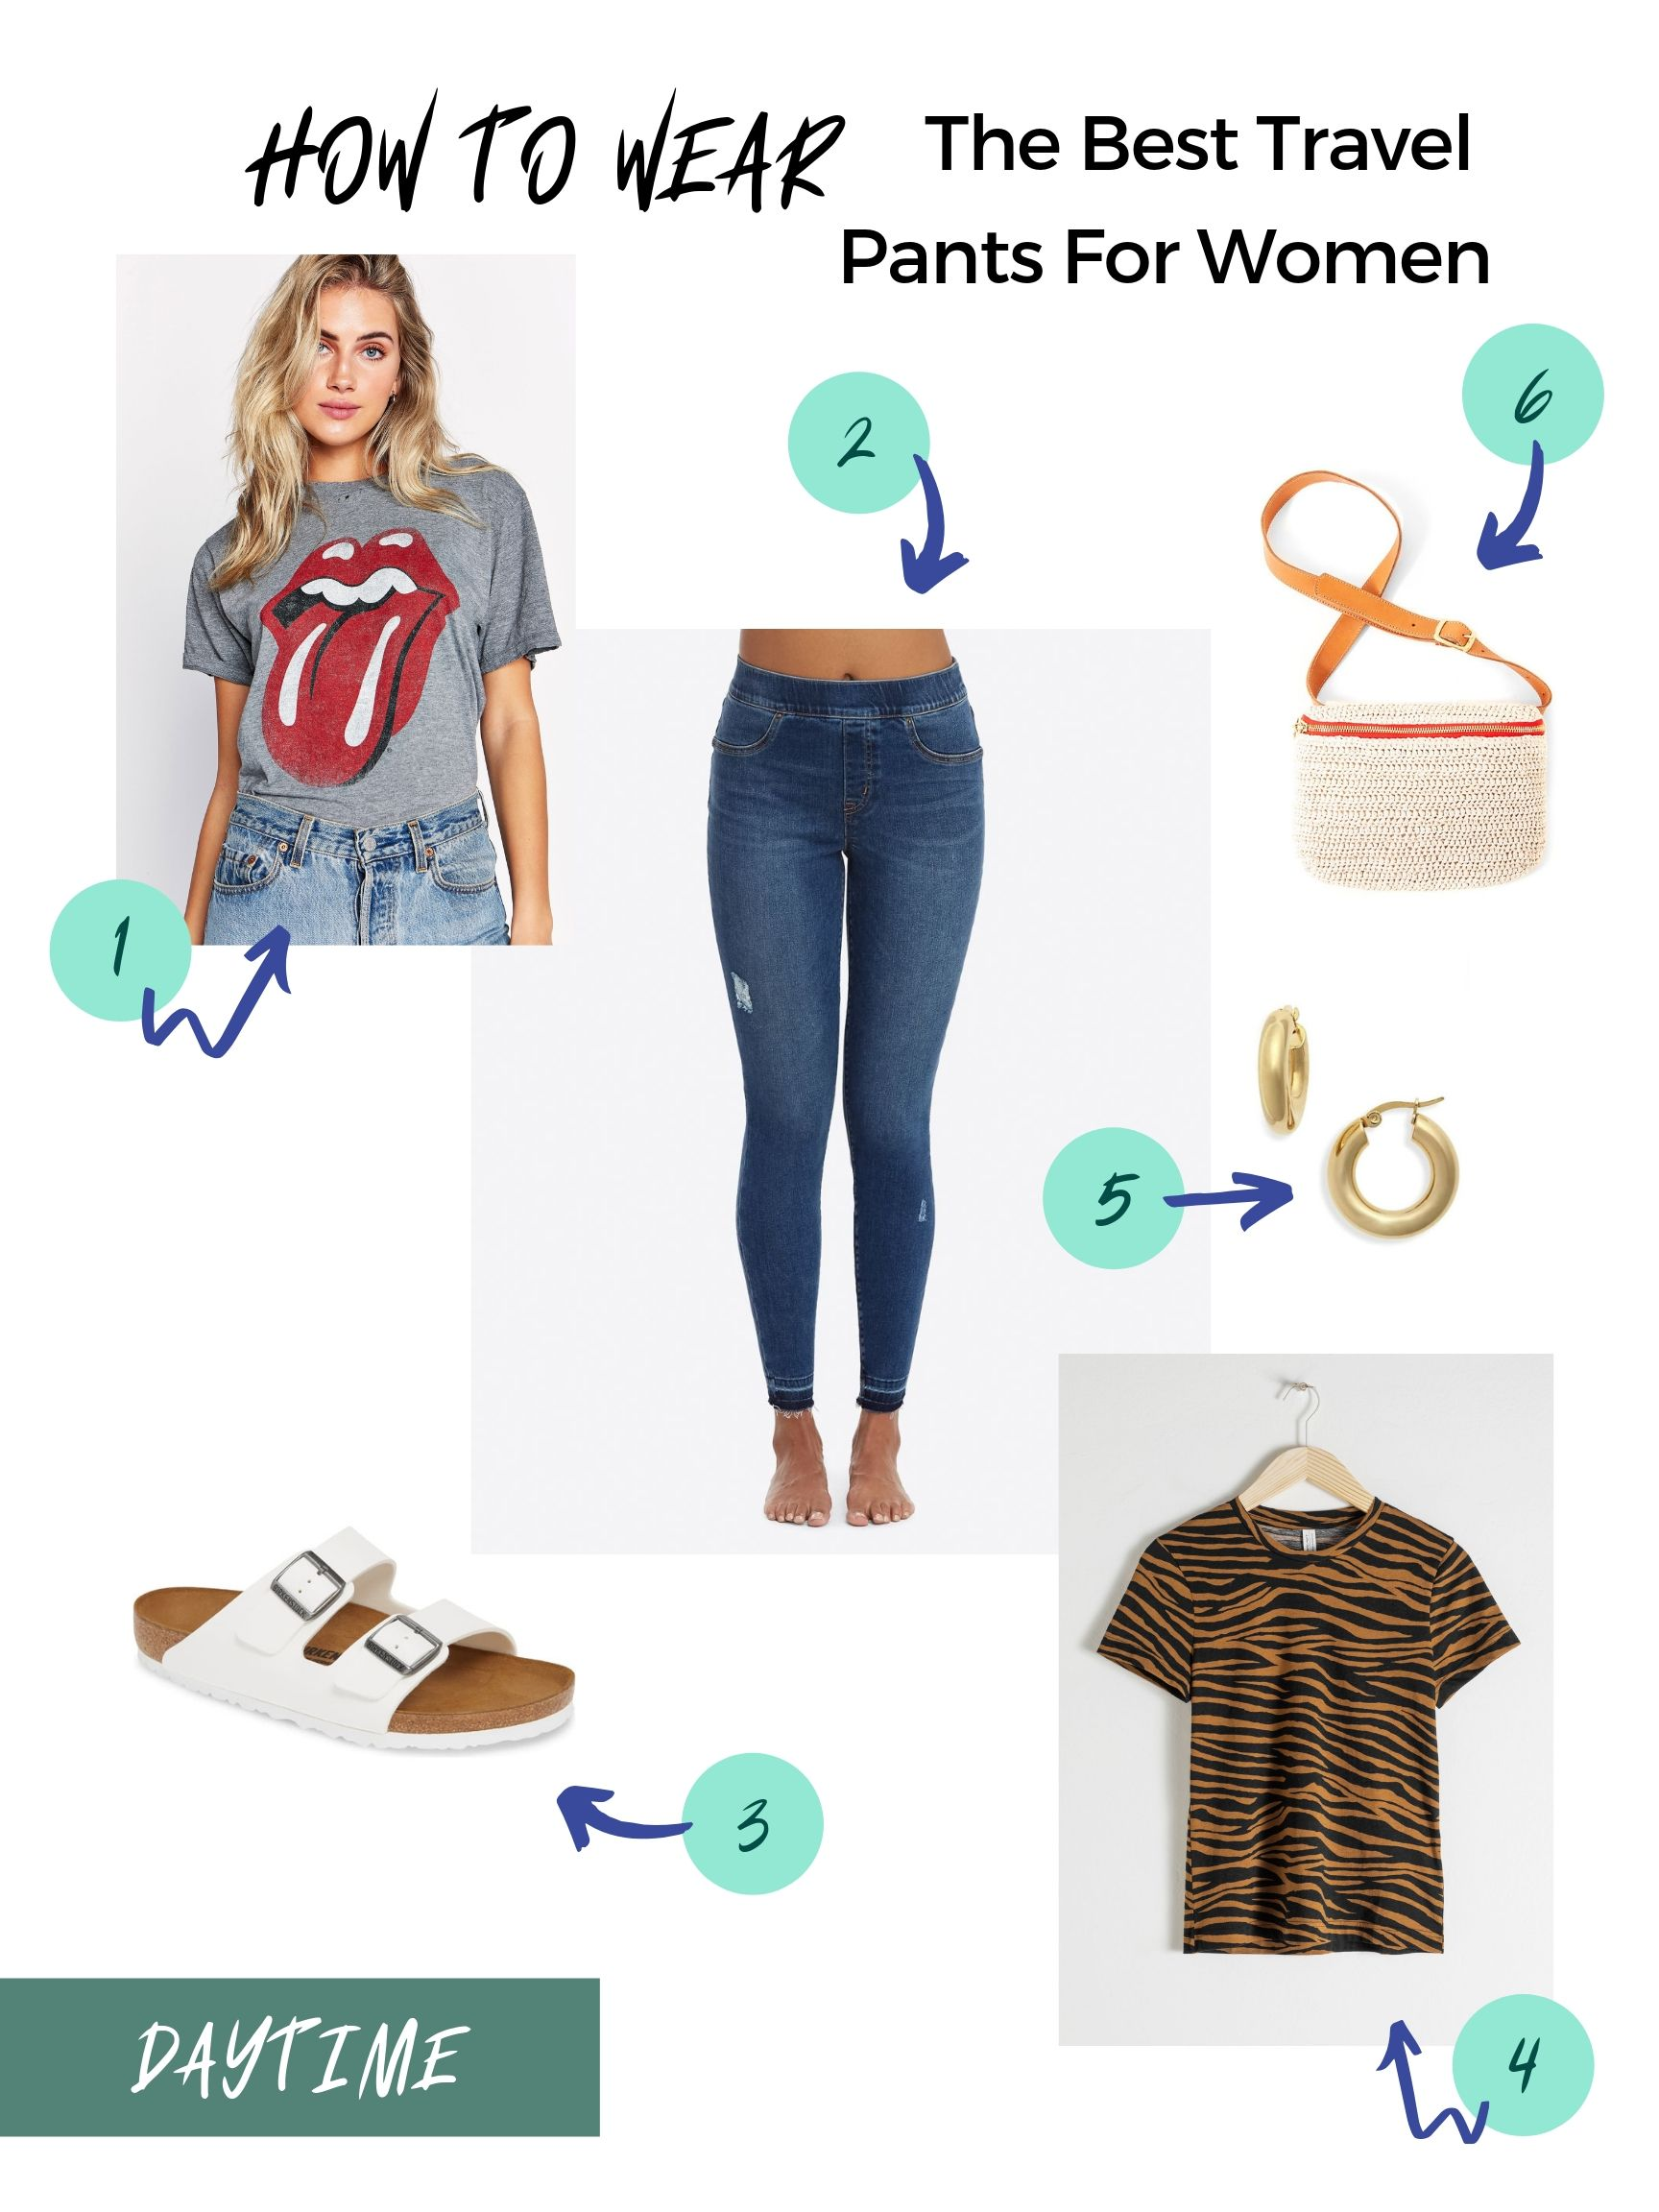 How to wear the best travel pants for women: Daytime styles | mom fashion tips for traveling with kids | Stacie Billis